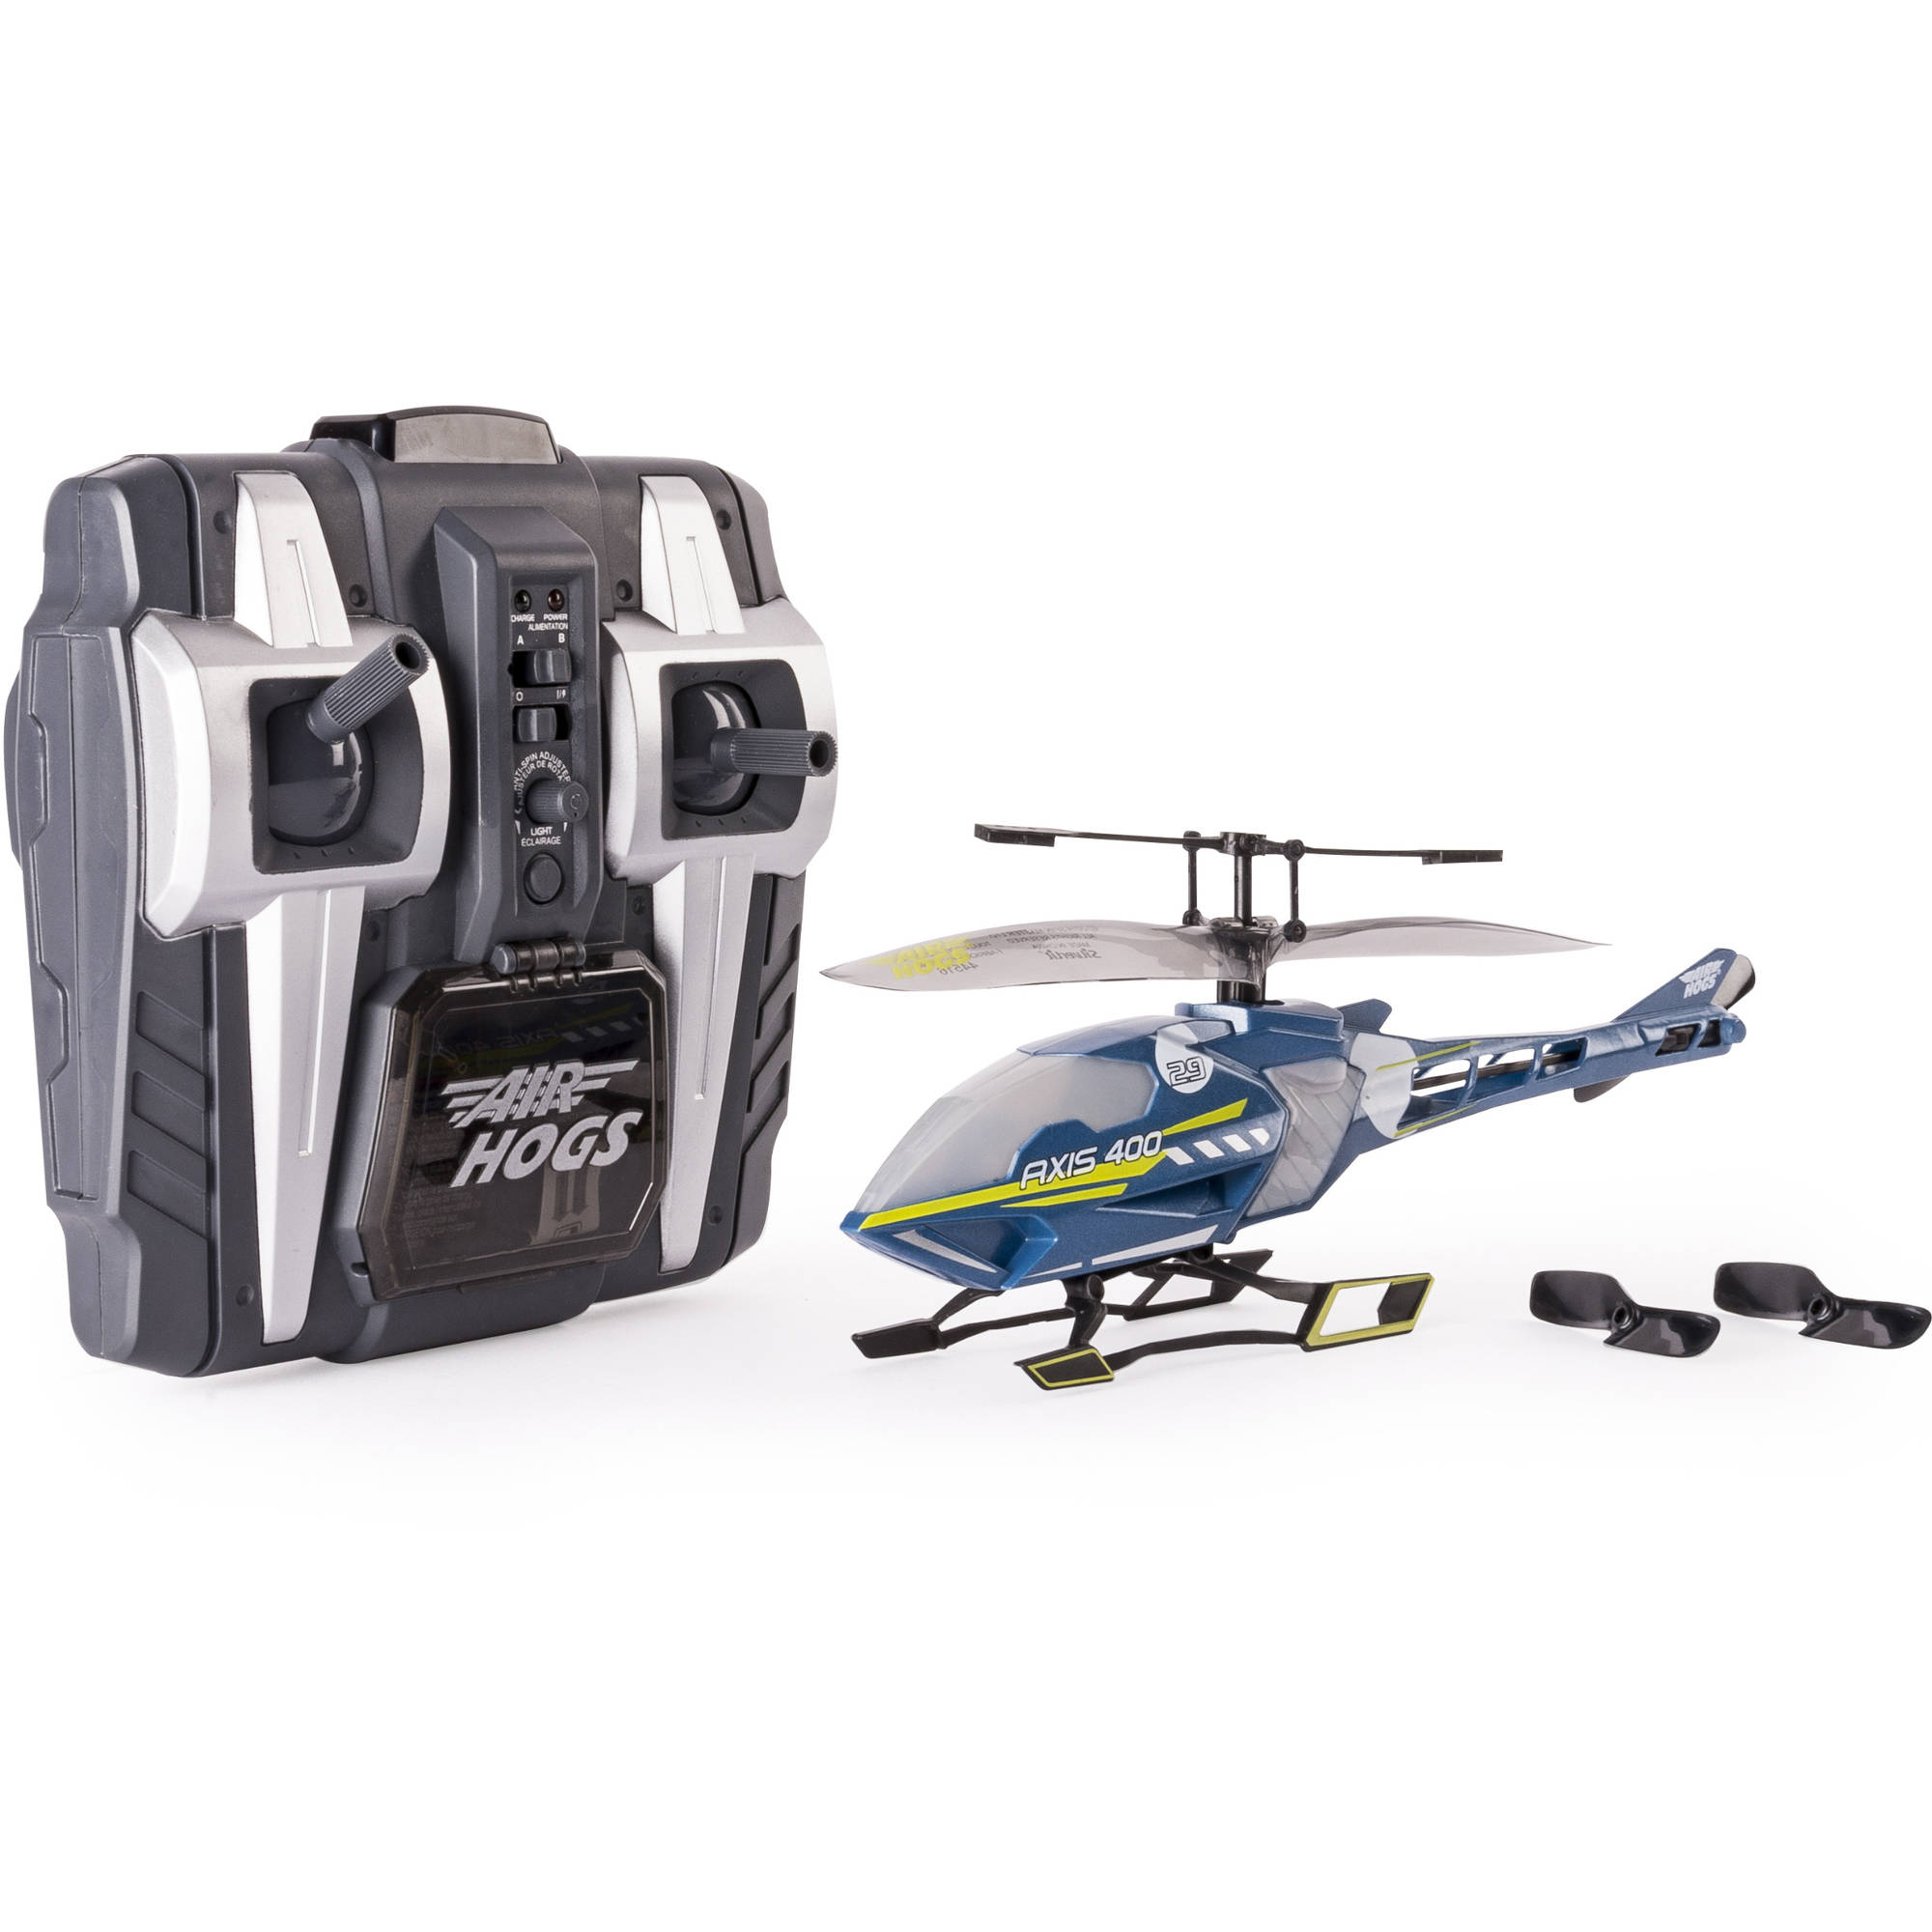 Air Hogs Axis 400x RC Helicopter, Gray by Spin Master Ltd